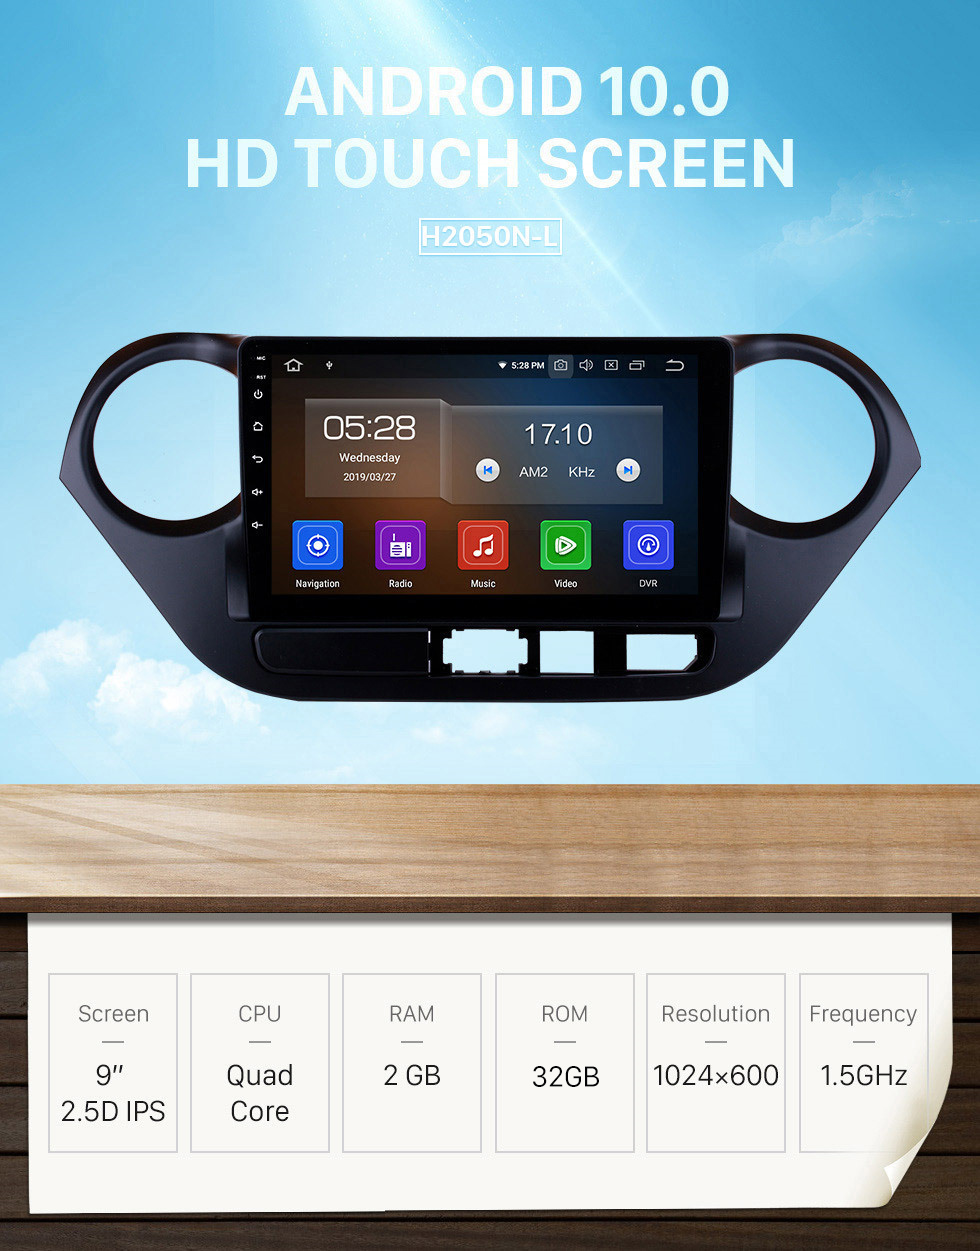 Seicane 9 inch Android 10.0 GPS Navigation System HD Touch Screen Radio 2013-2016 Hyundai I10 (LHD) Support OBD2 Bluetooth DVD Player DVR Rearview Camera TV Video Steering Wheel Control WIFI